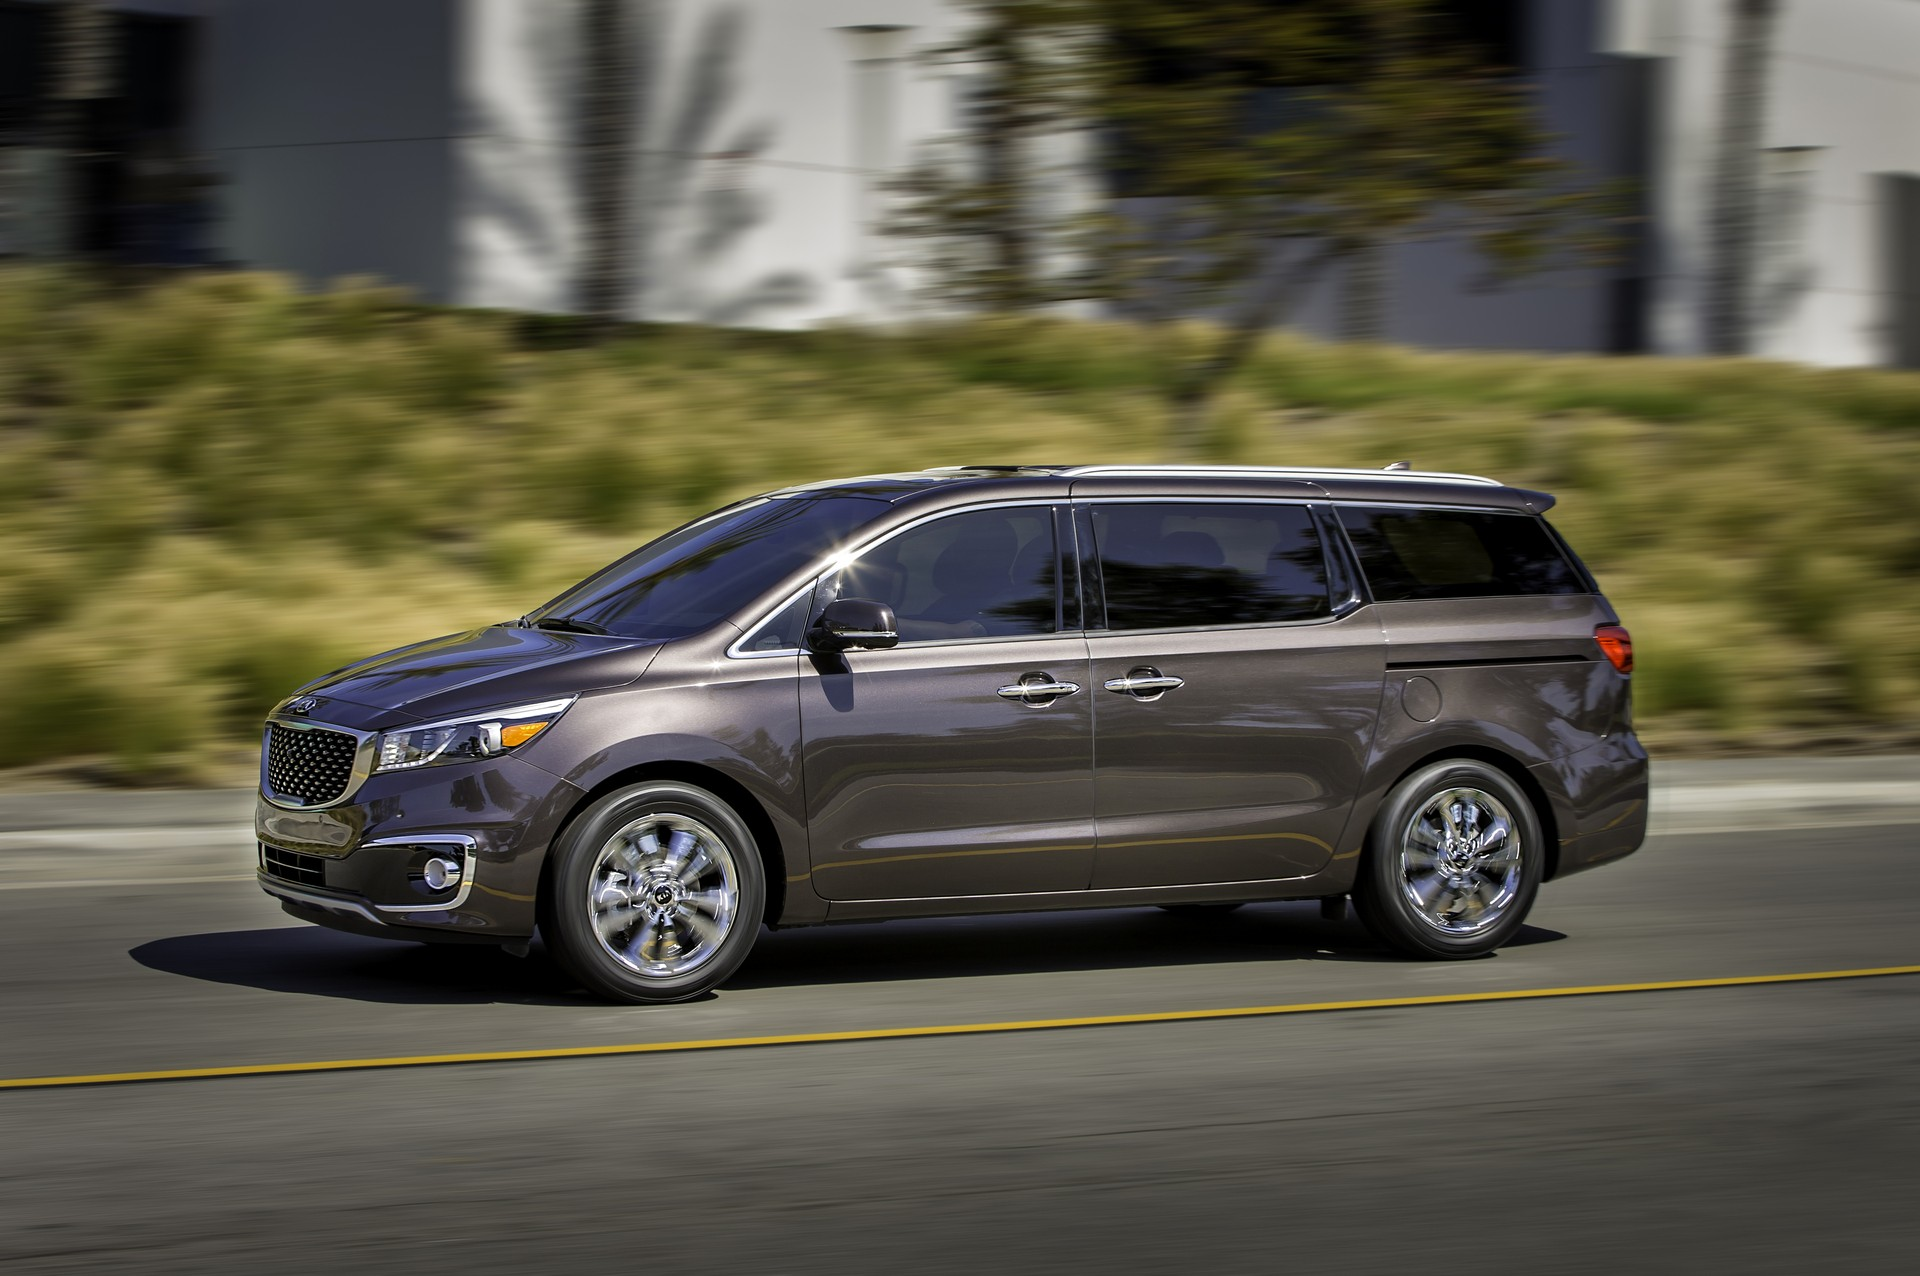 2016 kia sedona quality review the car connection. Black Bedroom Furniture Sets. Home Design Ideas